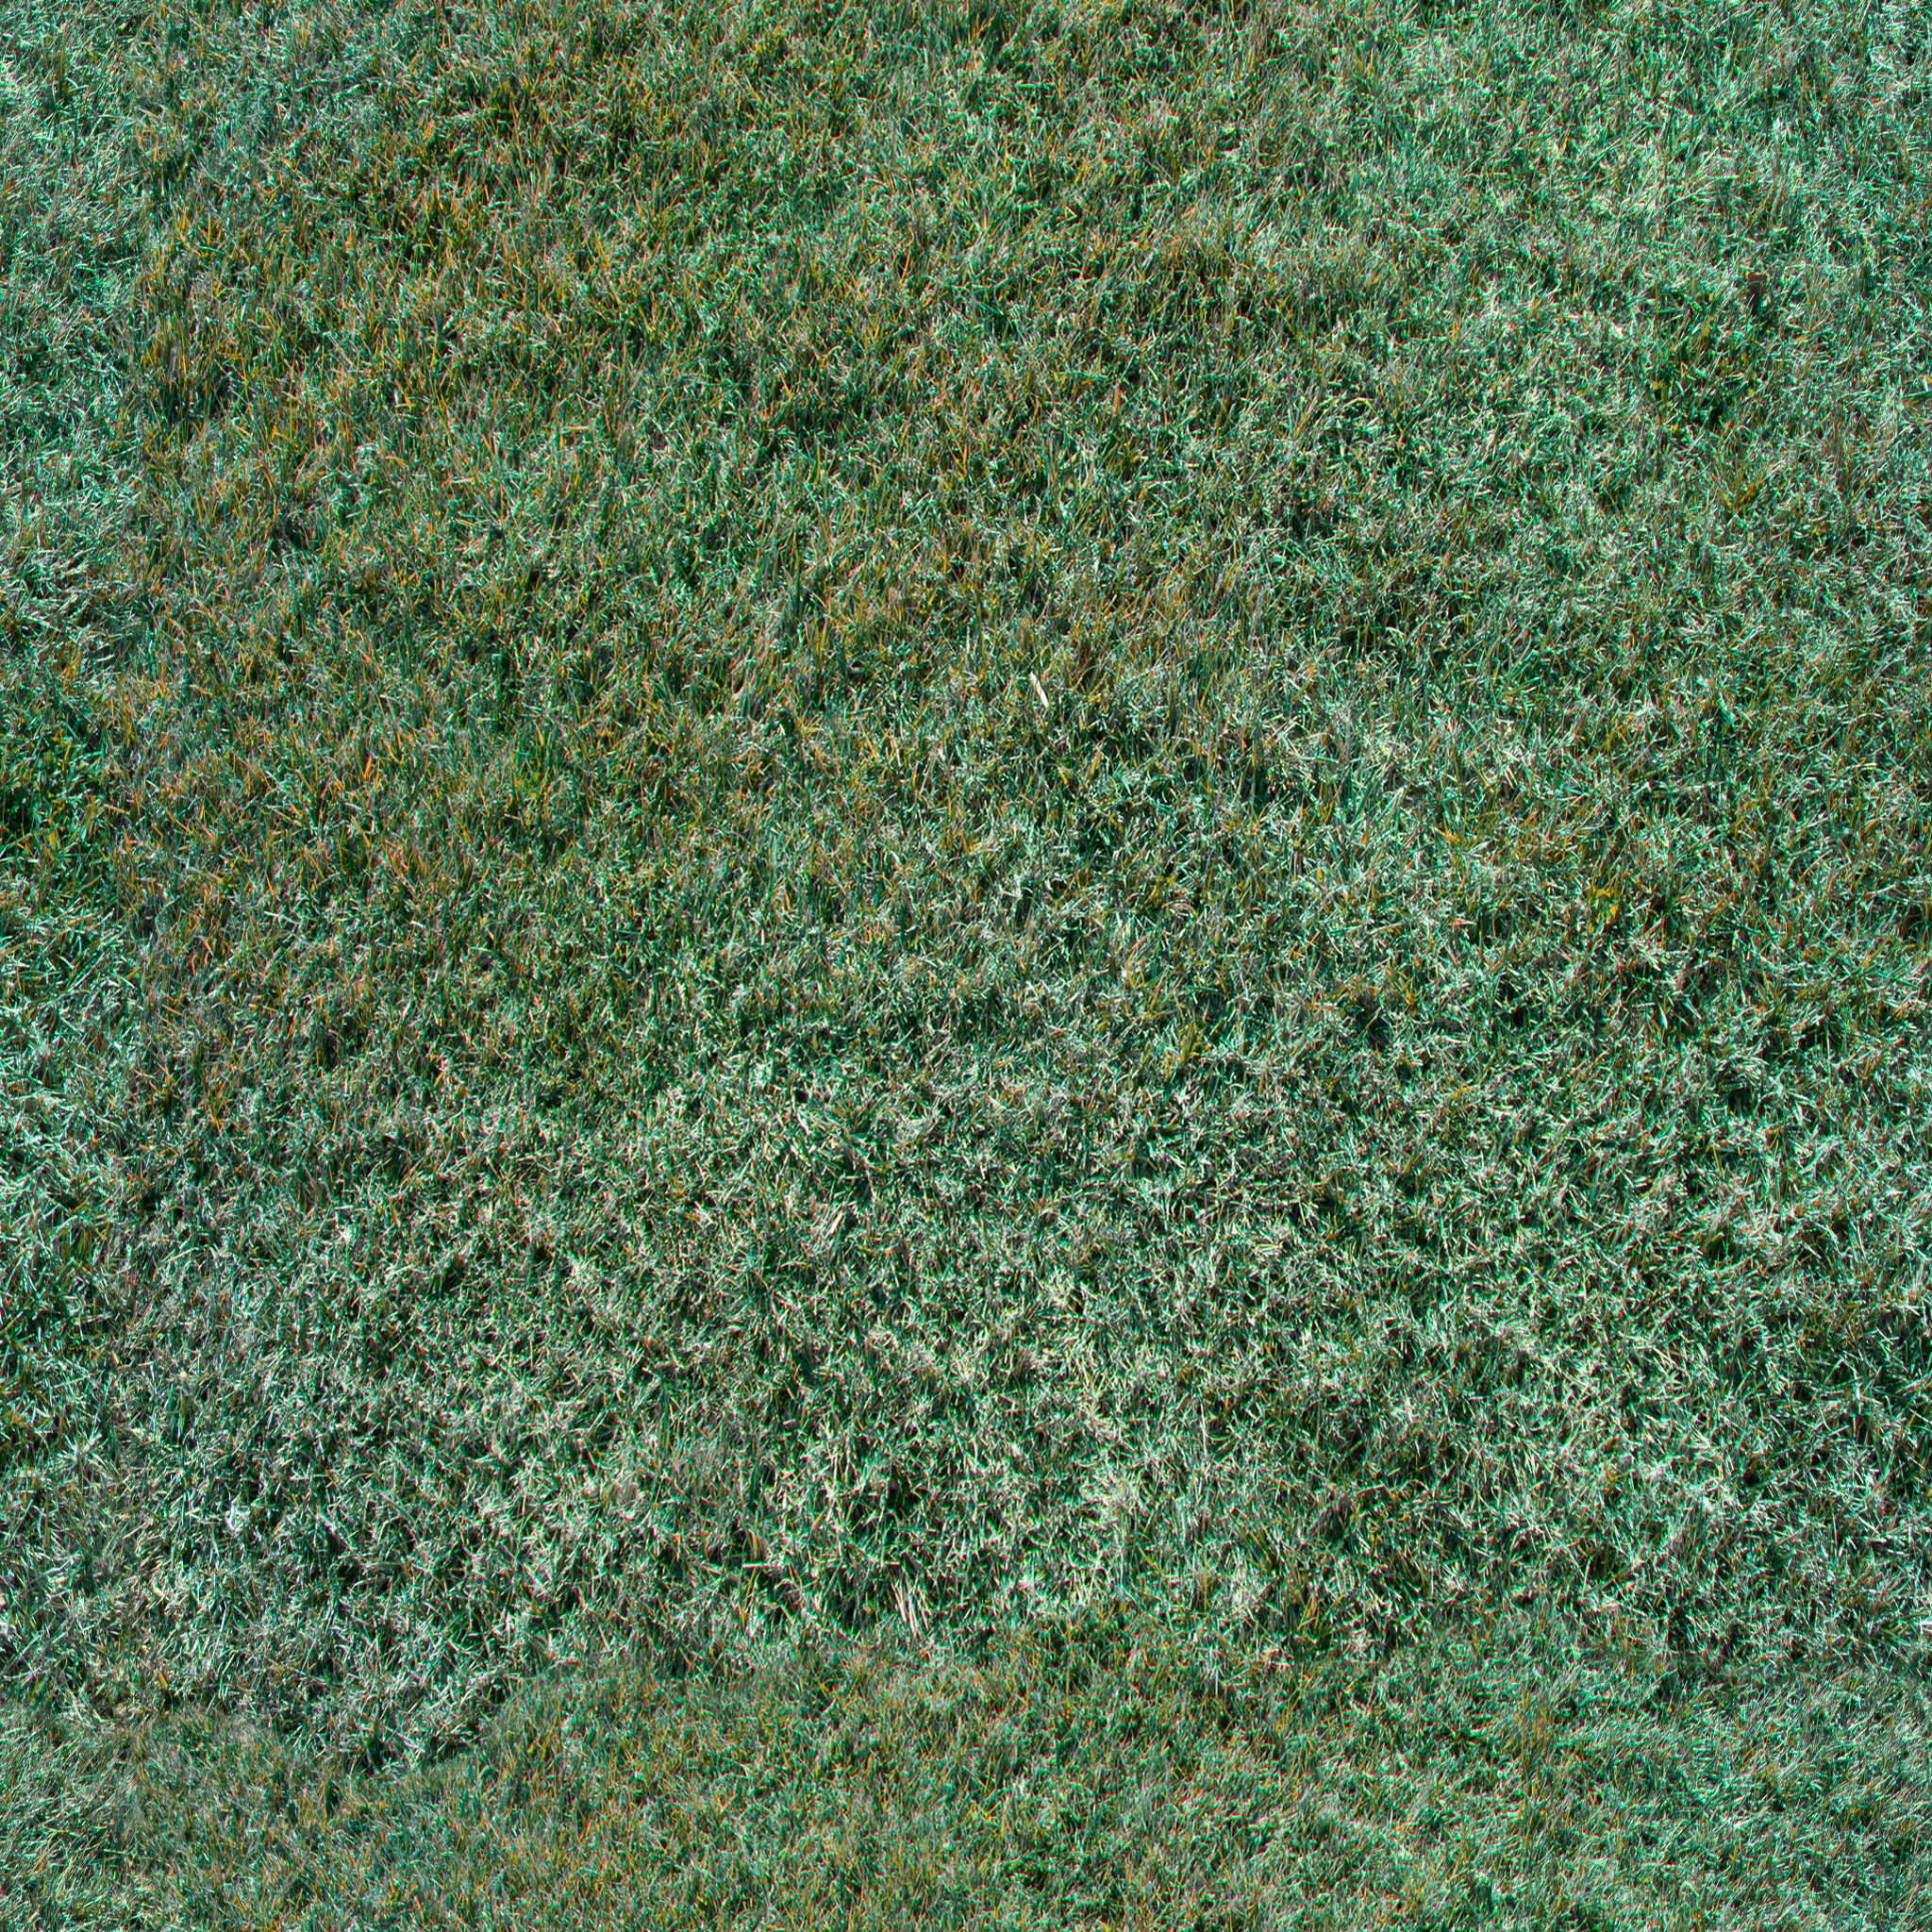 tufted-grass.jpg